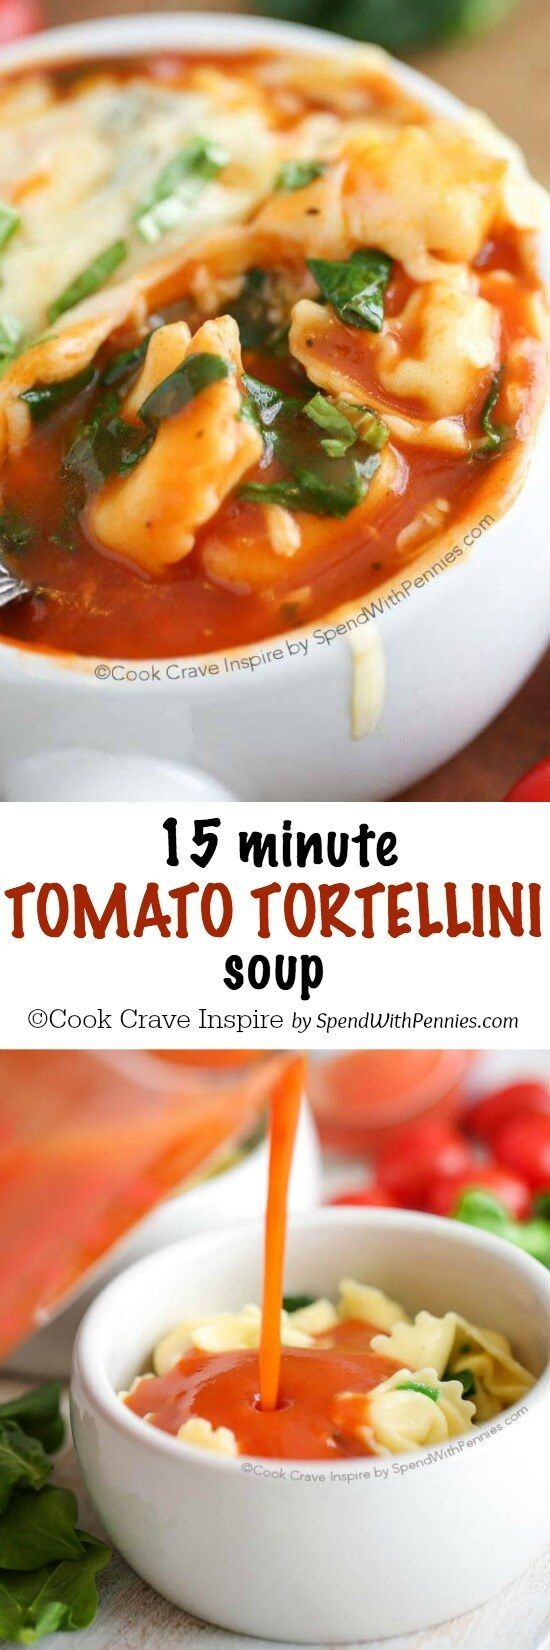 Tortellini, Tomaten and Suppen on Pinterest